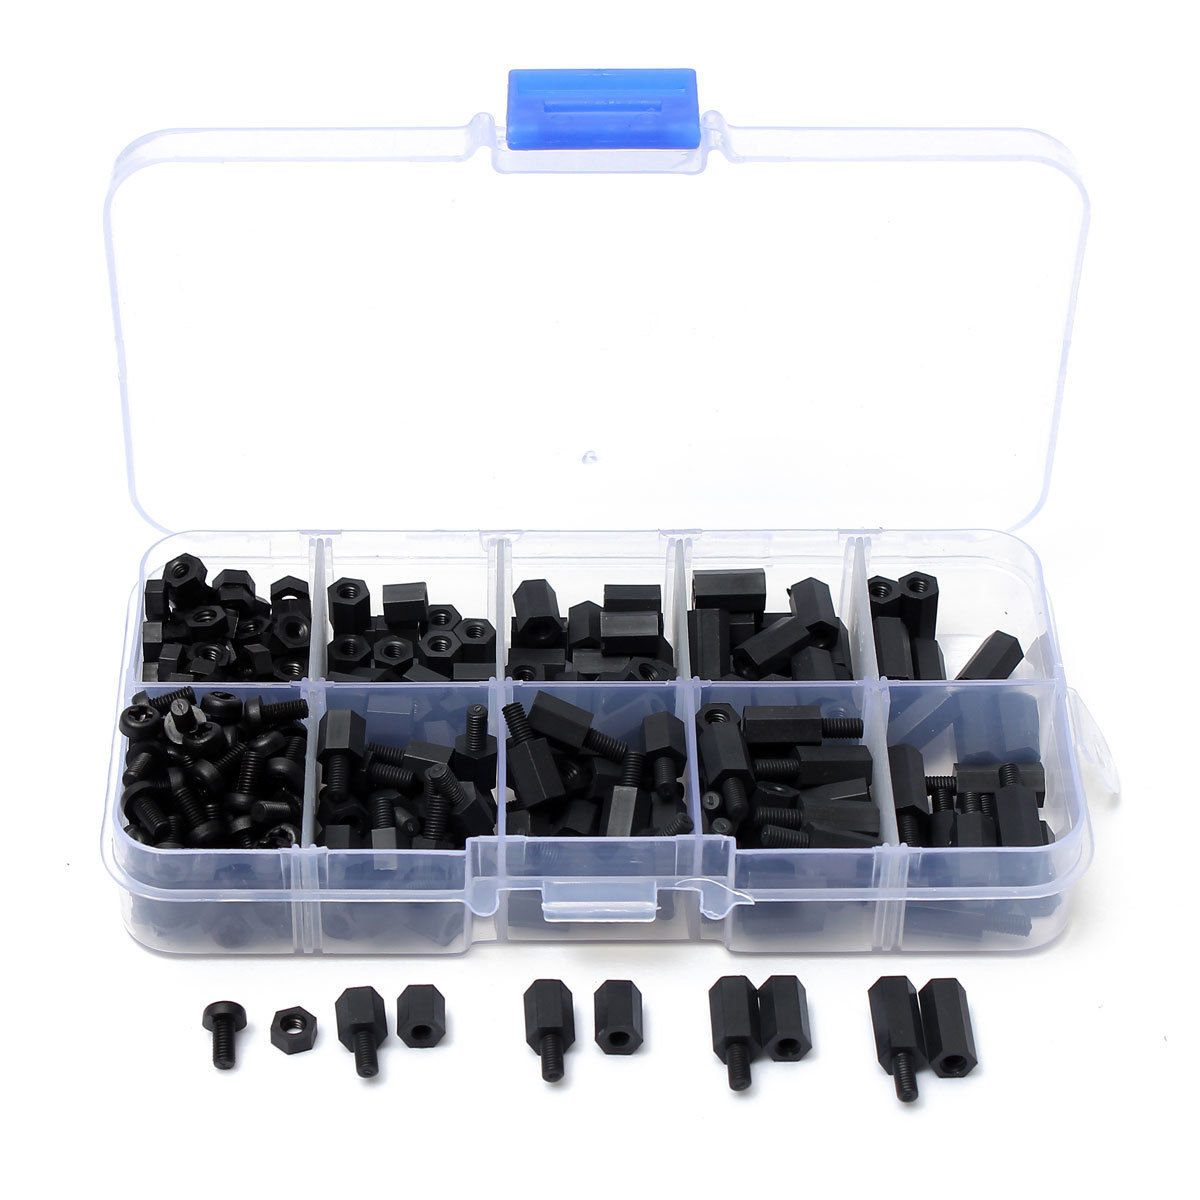 CNIM Hot 300pcs M3 Nylon Black M-F Hex Spacers Screw Nut Assortment Kit Stand-off Set 160pcs m3 nylon black m f hex spacers screw nut assortment kit stand off set box